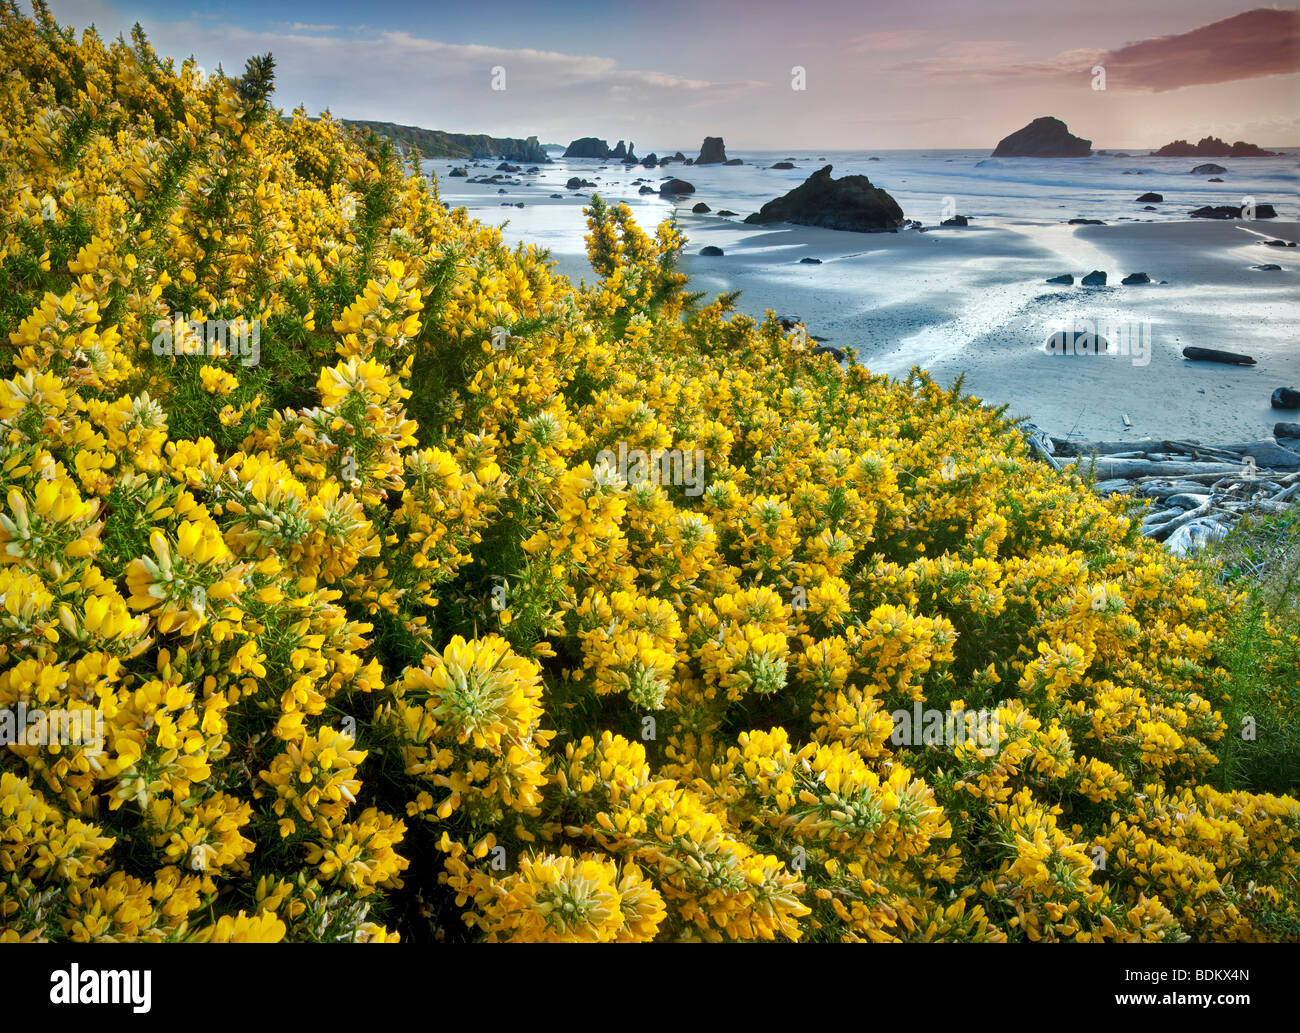 Bandon Beach with blooming gorse. Oregon - Stock Image